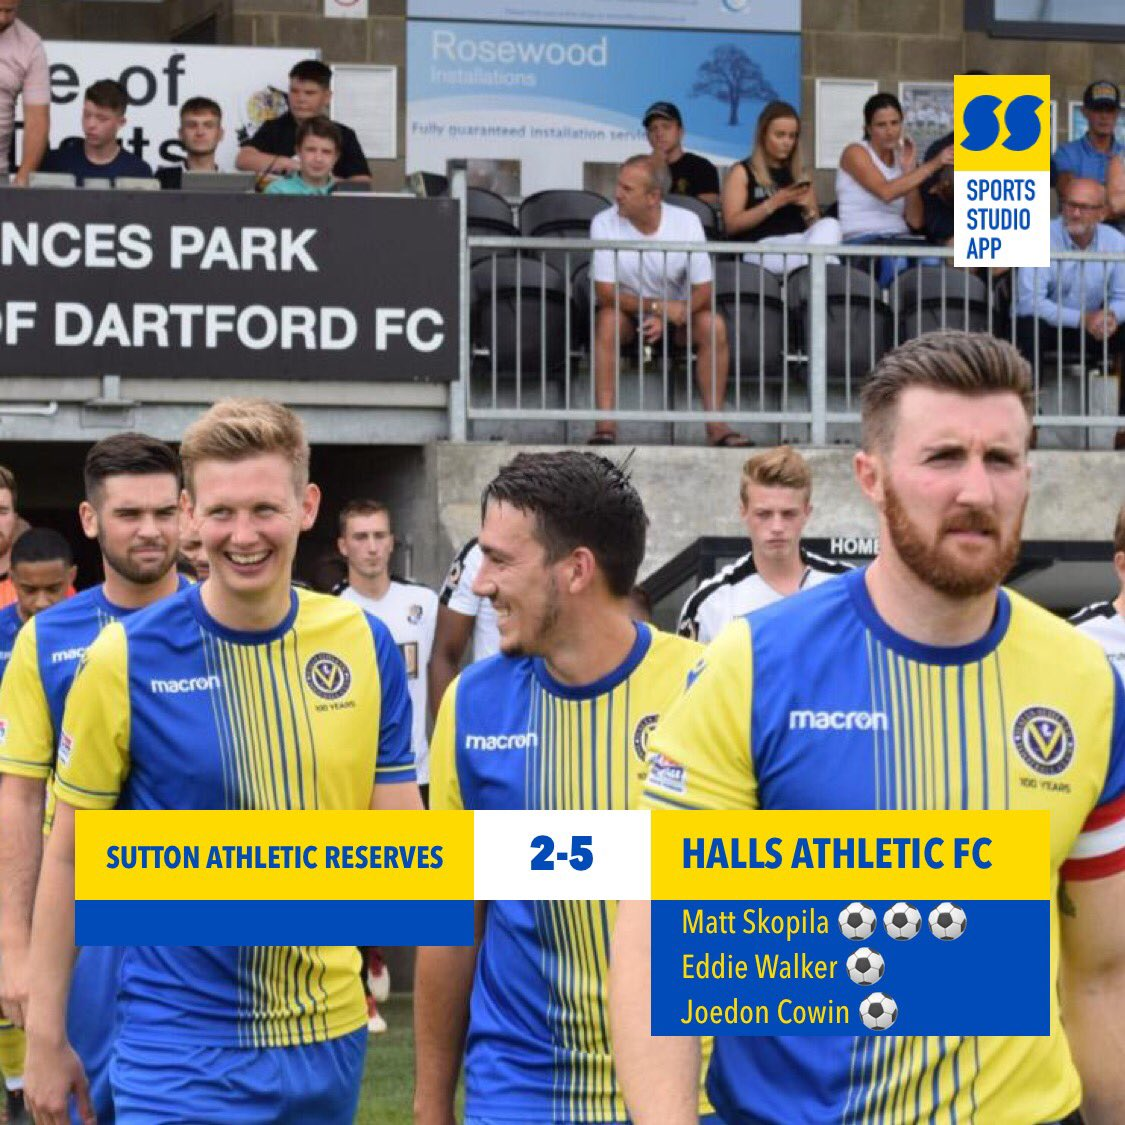 test Twitter Media - A good win today against local rivals. Slow start in the game but our quality shone through. Excellent hatrick by @mattskopila and goals from @EdwardWalker2 Joedon 💛💙💛💙 #HAFC #100thseason https://t.co/UiXY3uJZgd